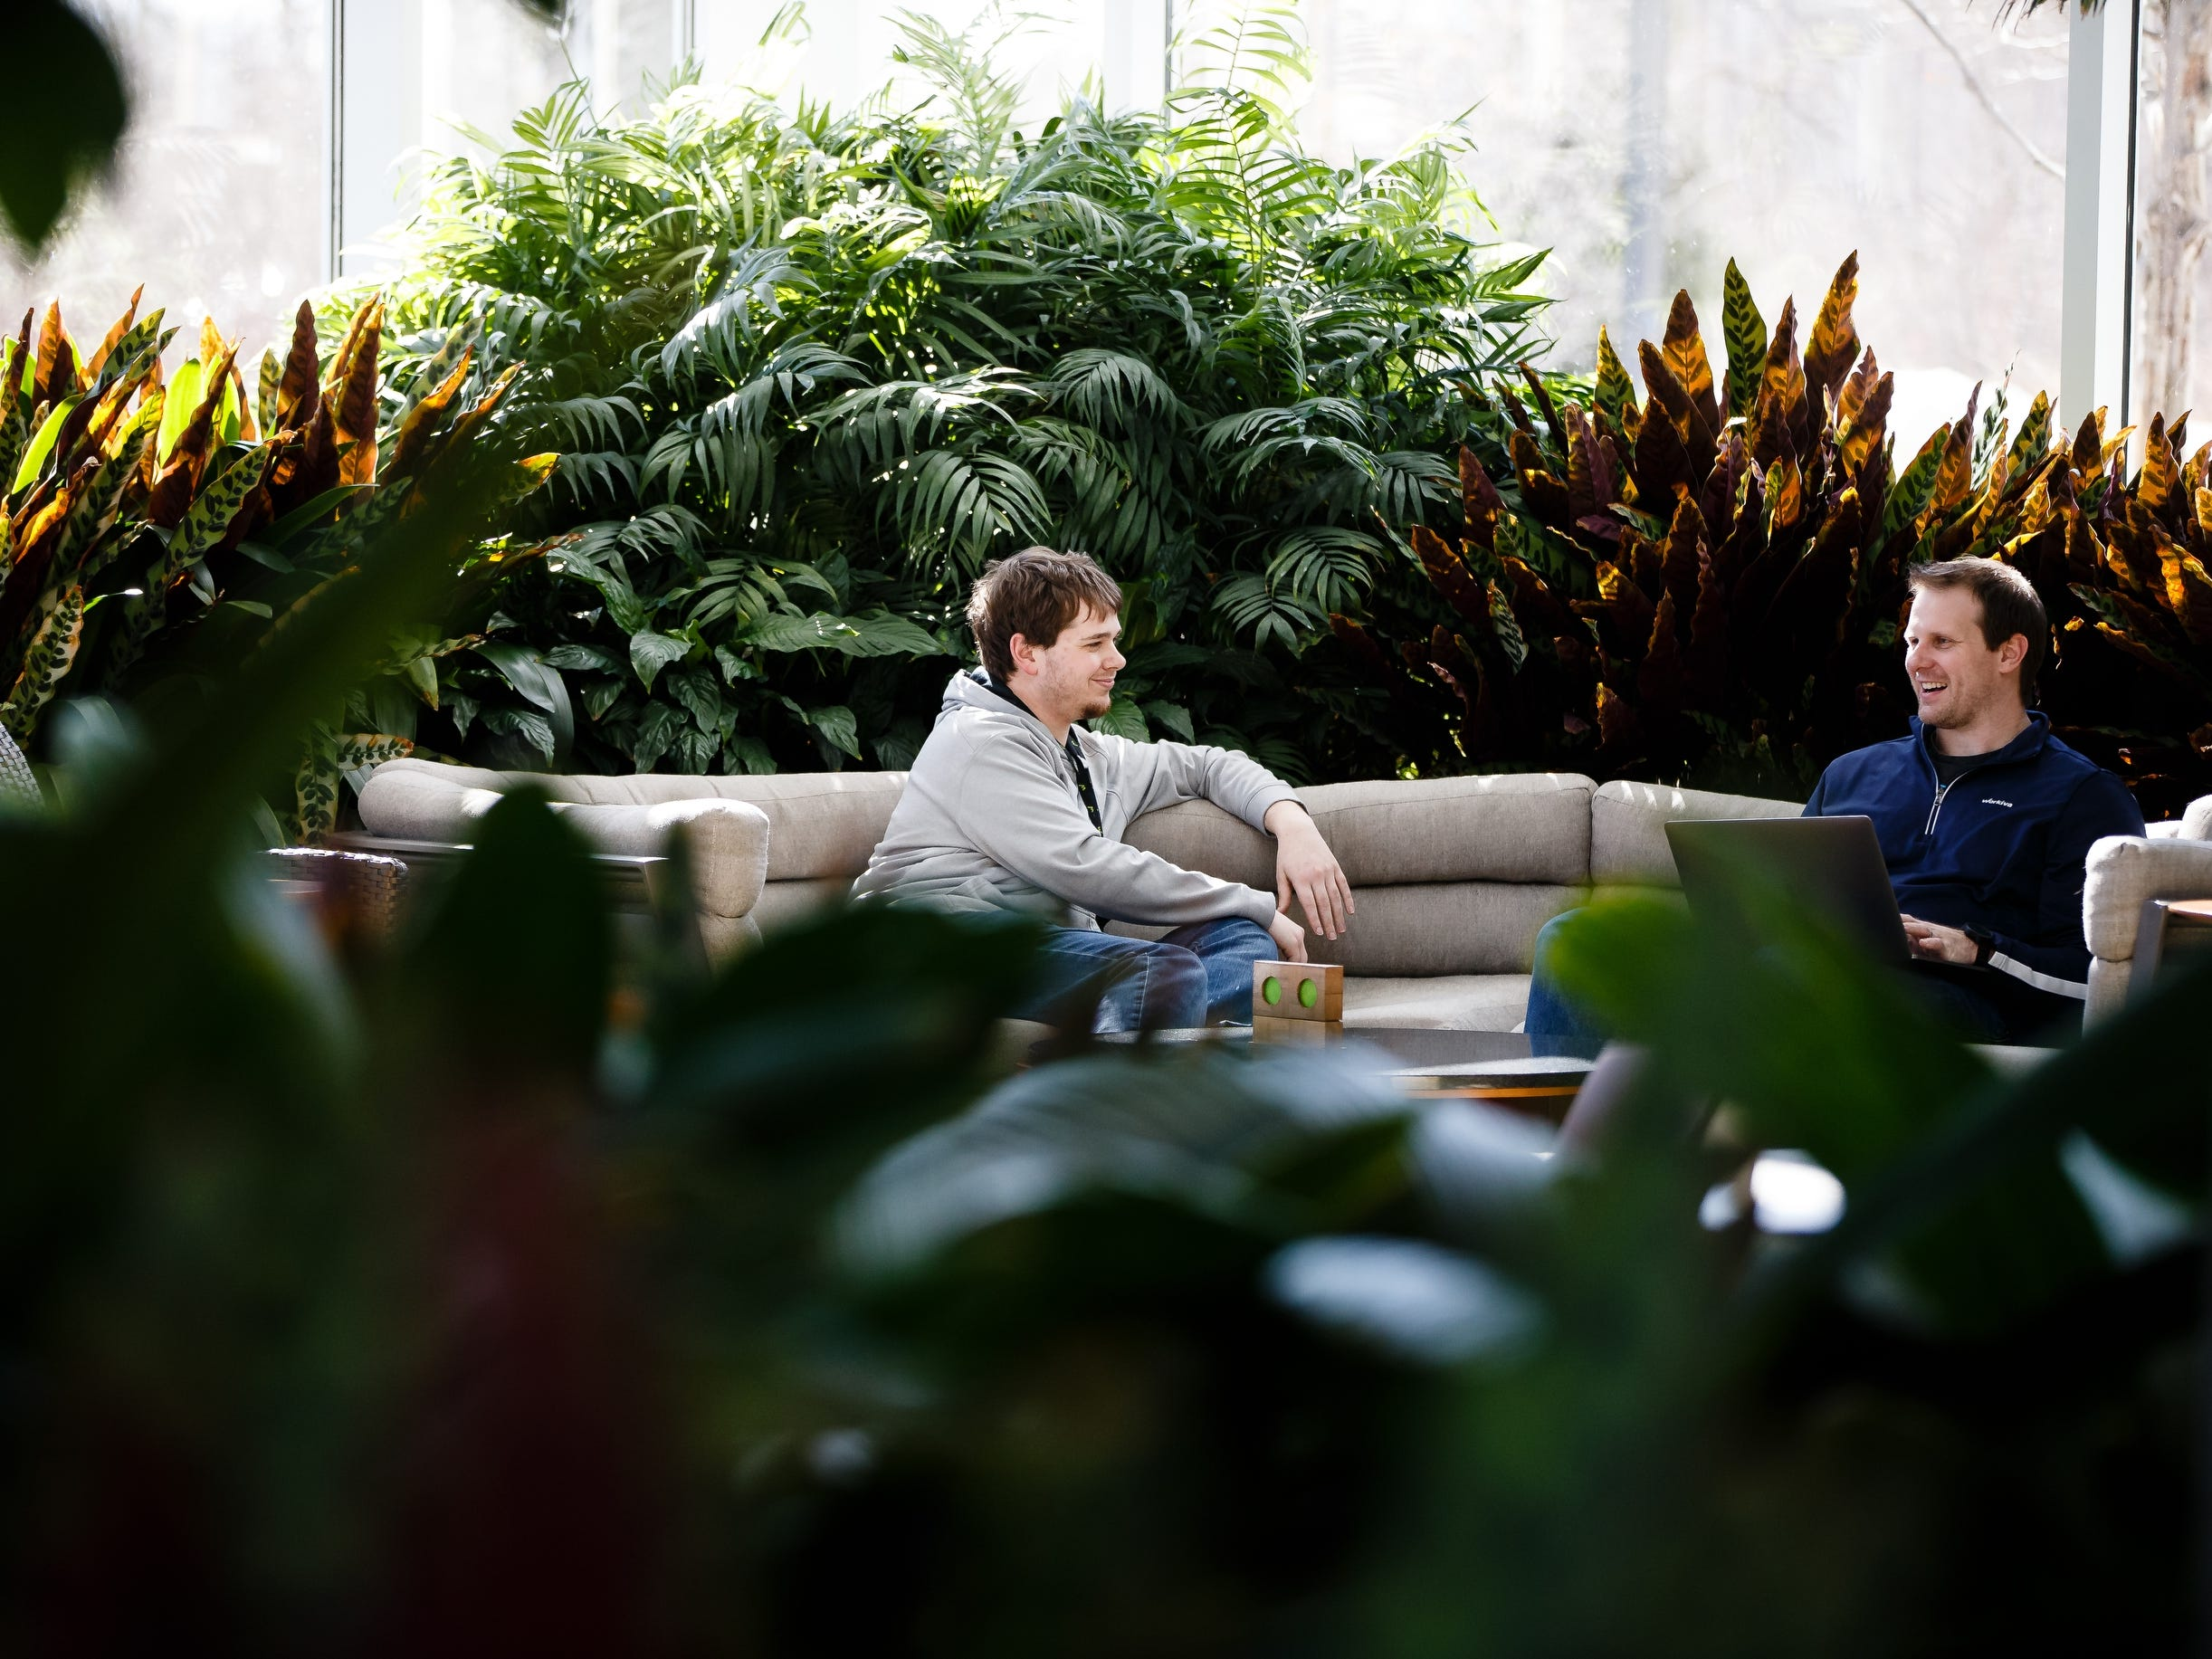 Bretton Finch, left, of Ankeny and Joel Marks, right, of West Des Moines, work in the atrium of Workiva, a tech company in Ames on Friday, March 15, 2019.